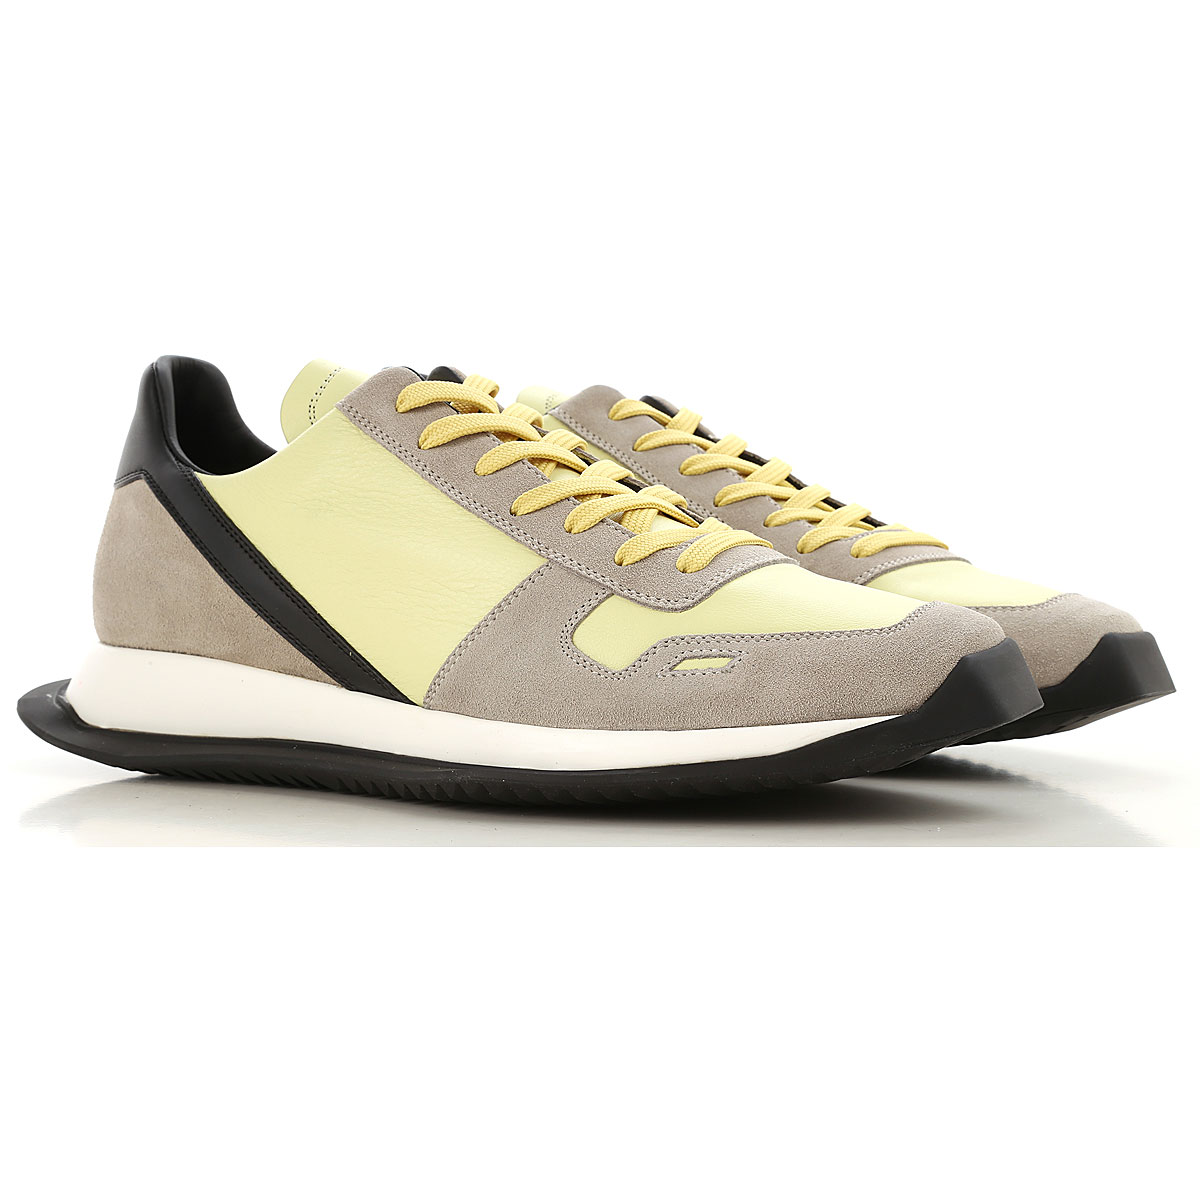 Rick Owens Sneakers for Men On Sale in Outlet, Lime, Leather, 2019, 10 10.5 6.5 7.5 7.75 8.5 9 9.5